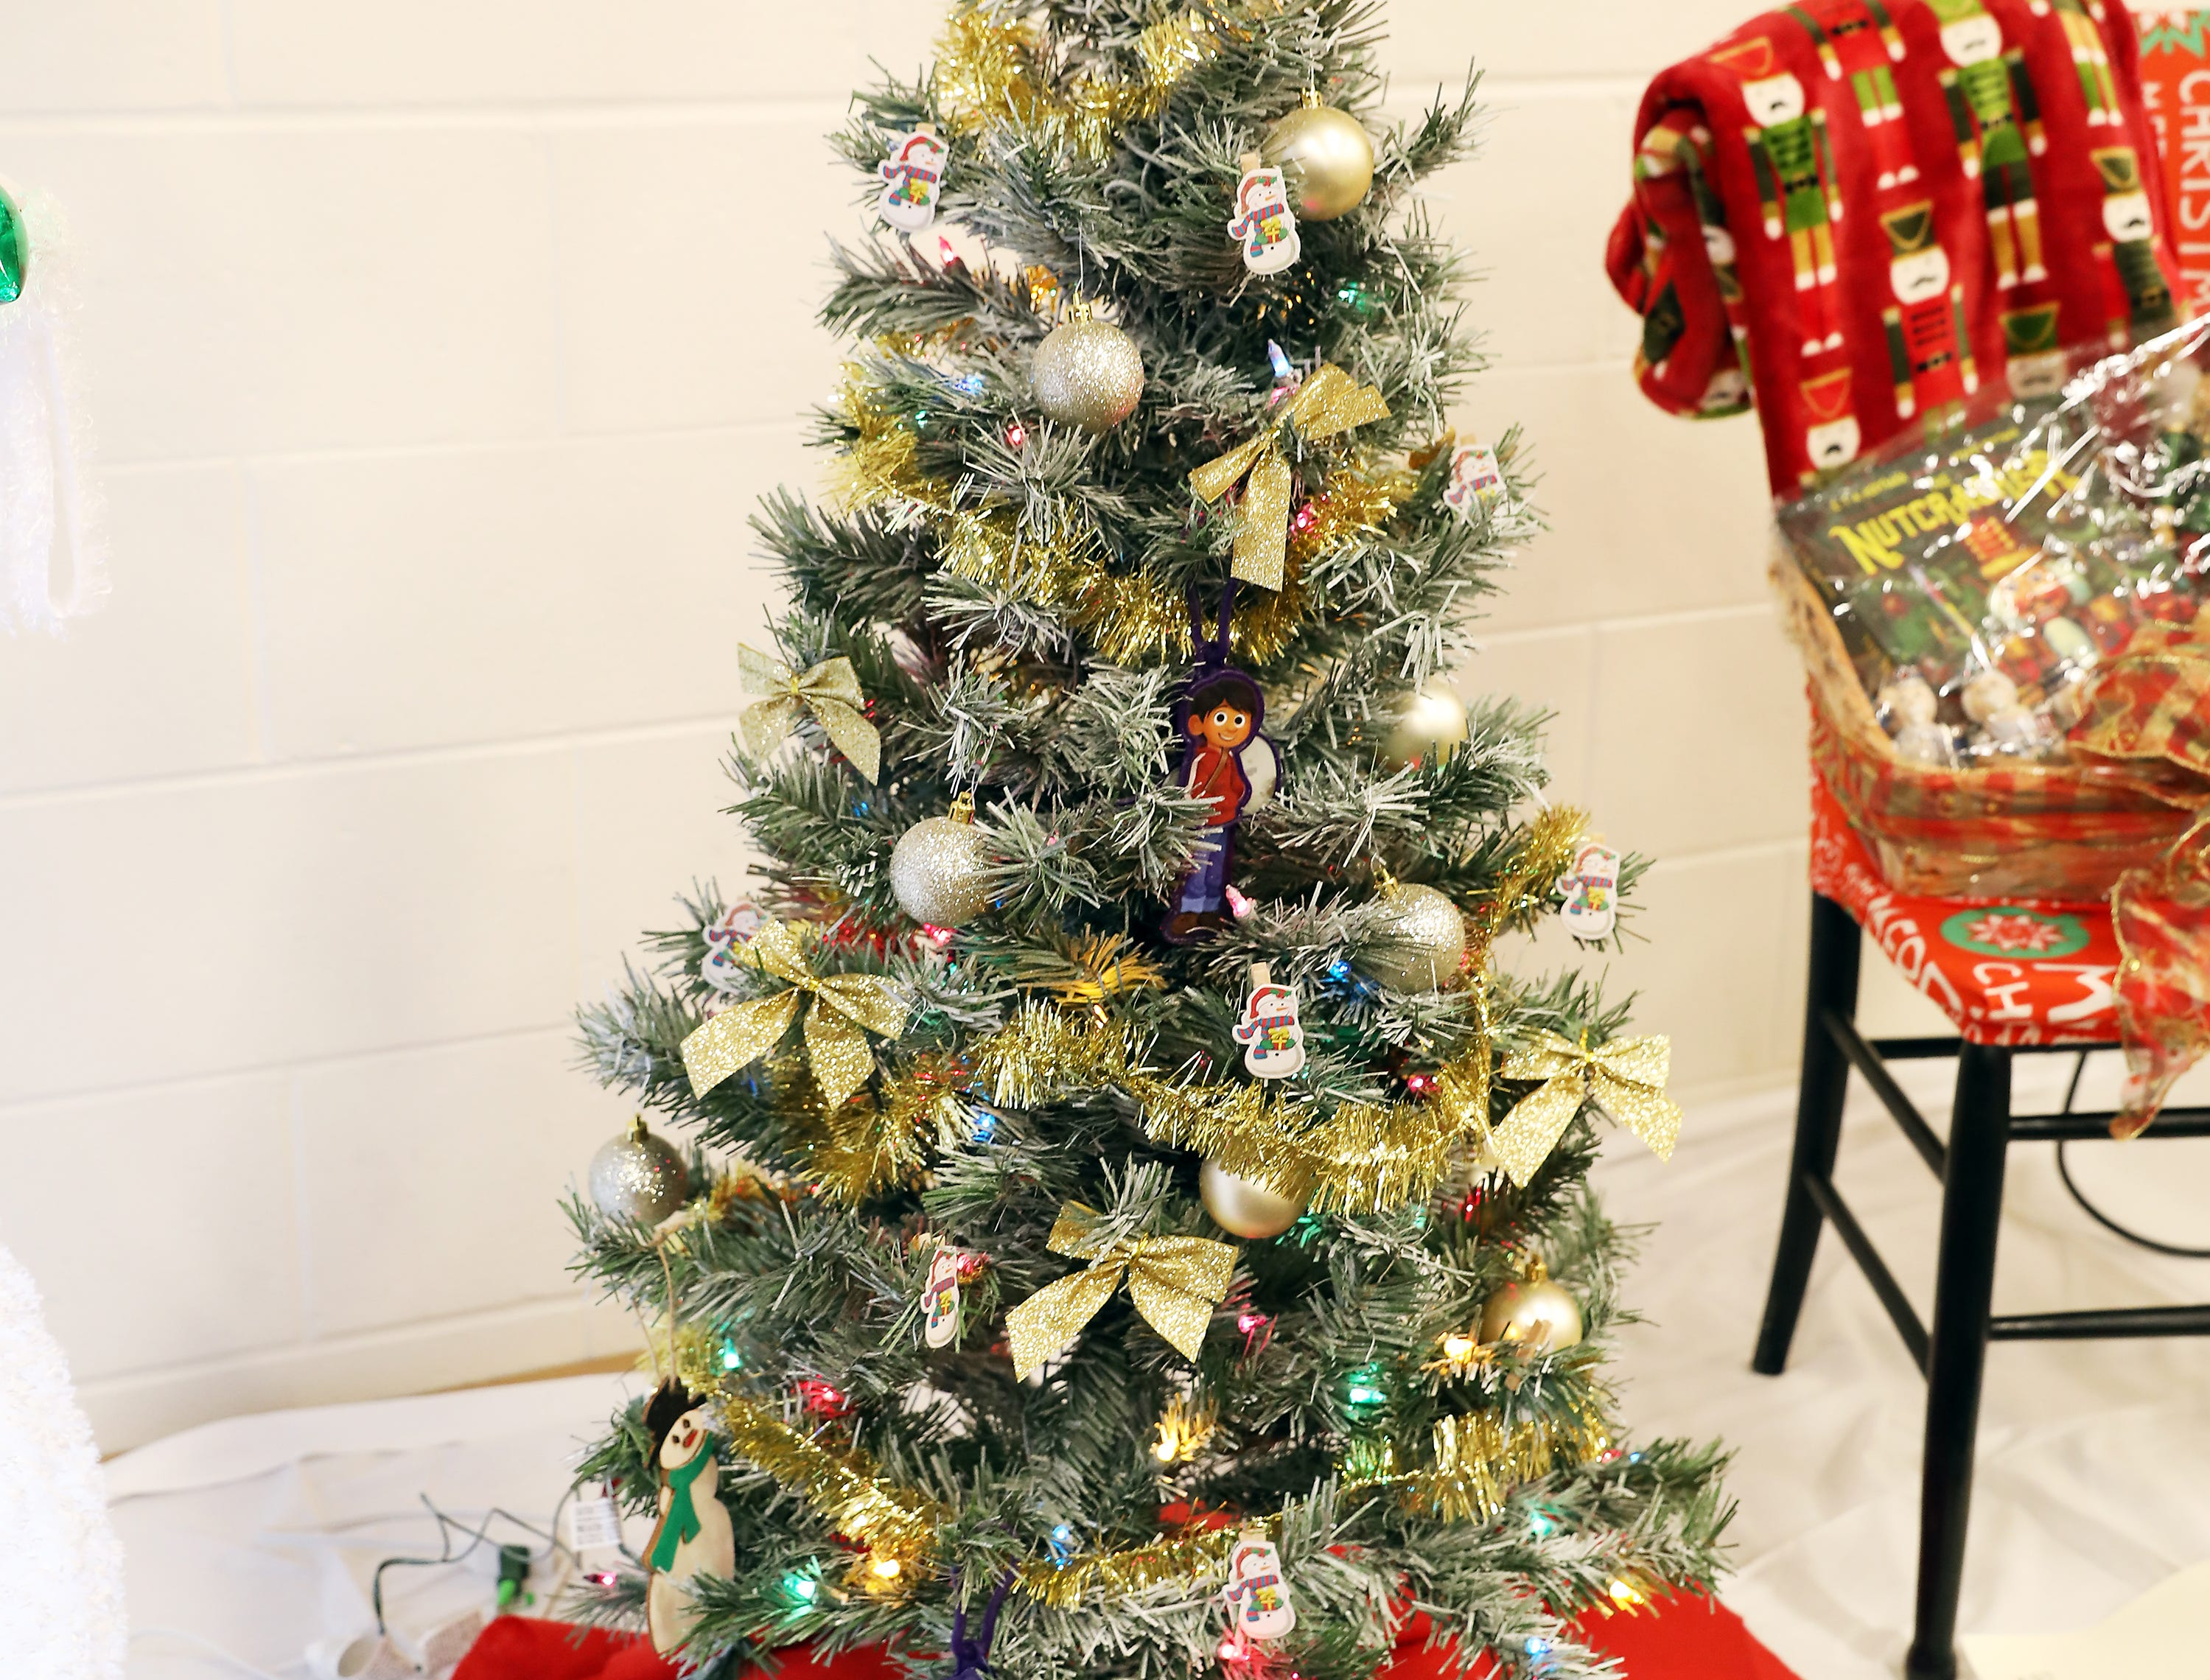 1643:15 PMPar Mar Oil CompanyMedium TreeKids ChristmasA medium green prelit tree decorated with gold bulbs and gold stars.Gift card from Par Mar and other items